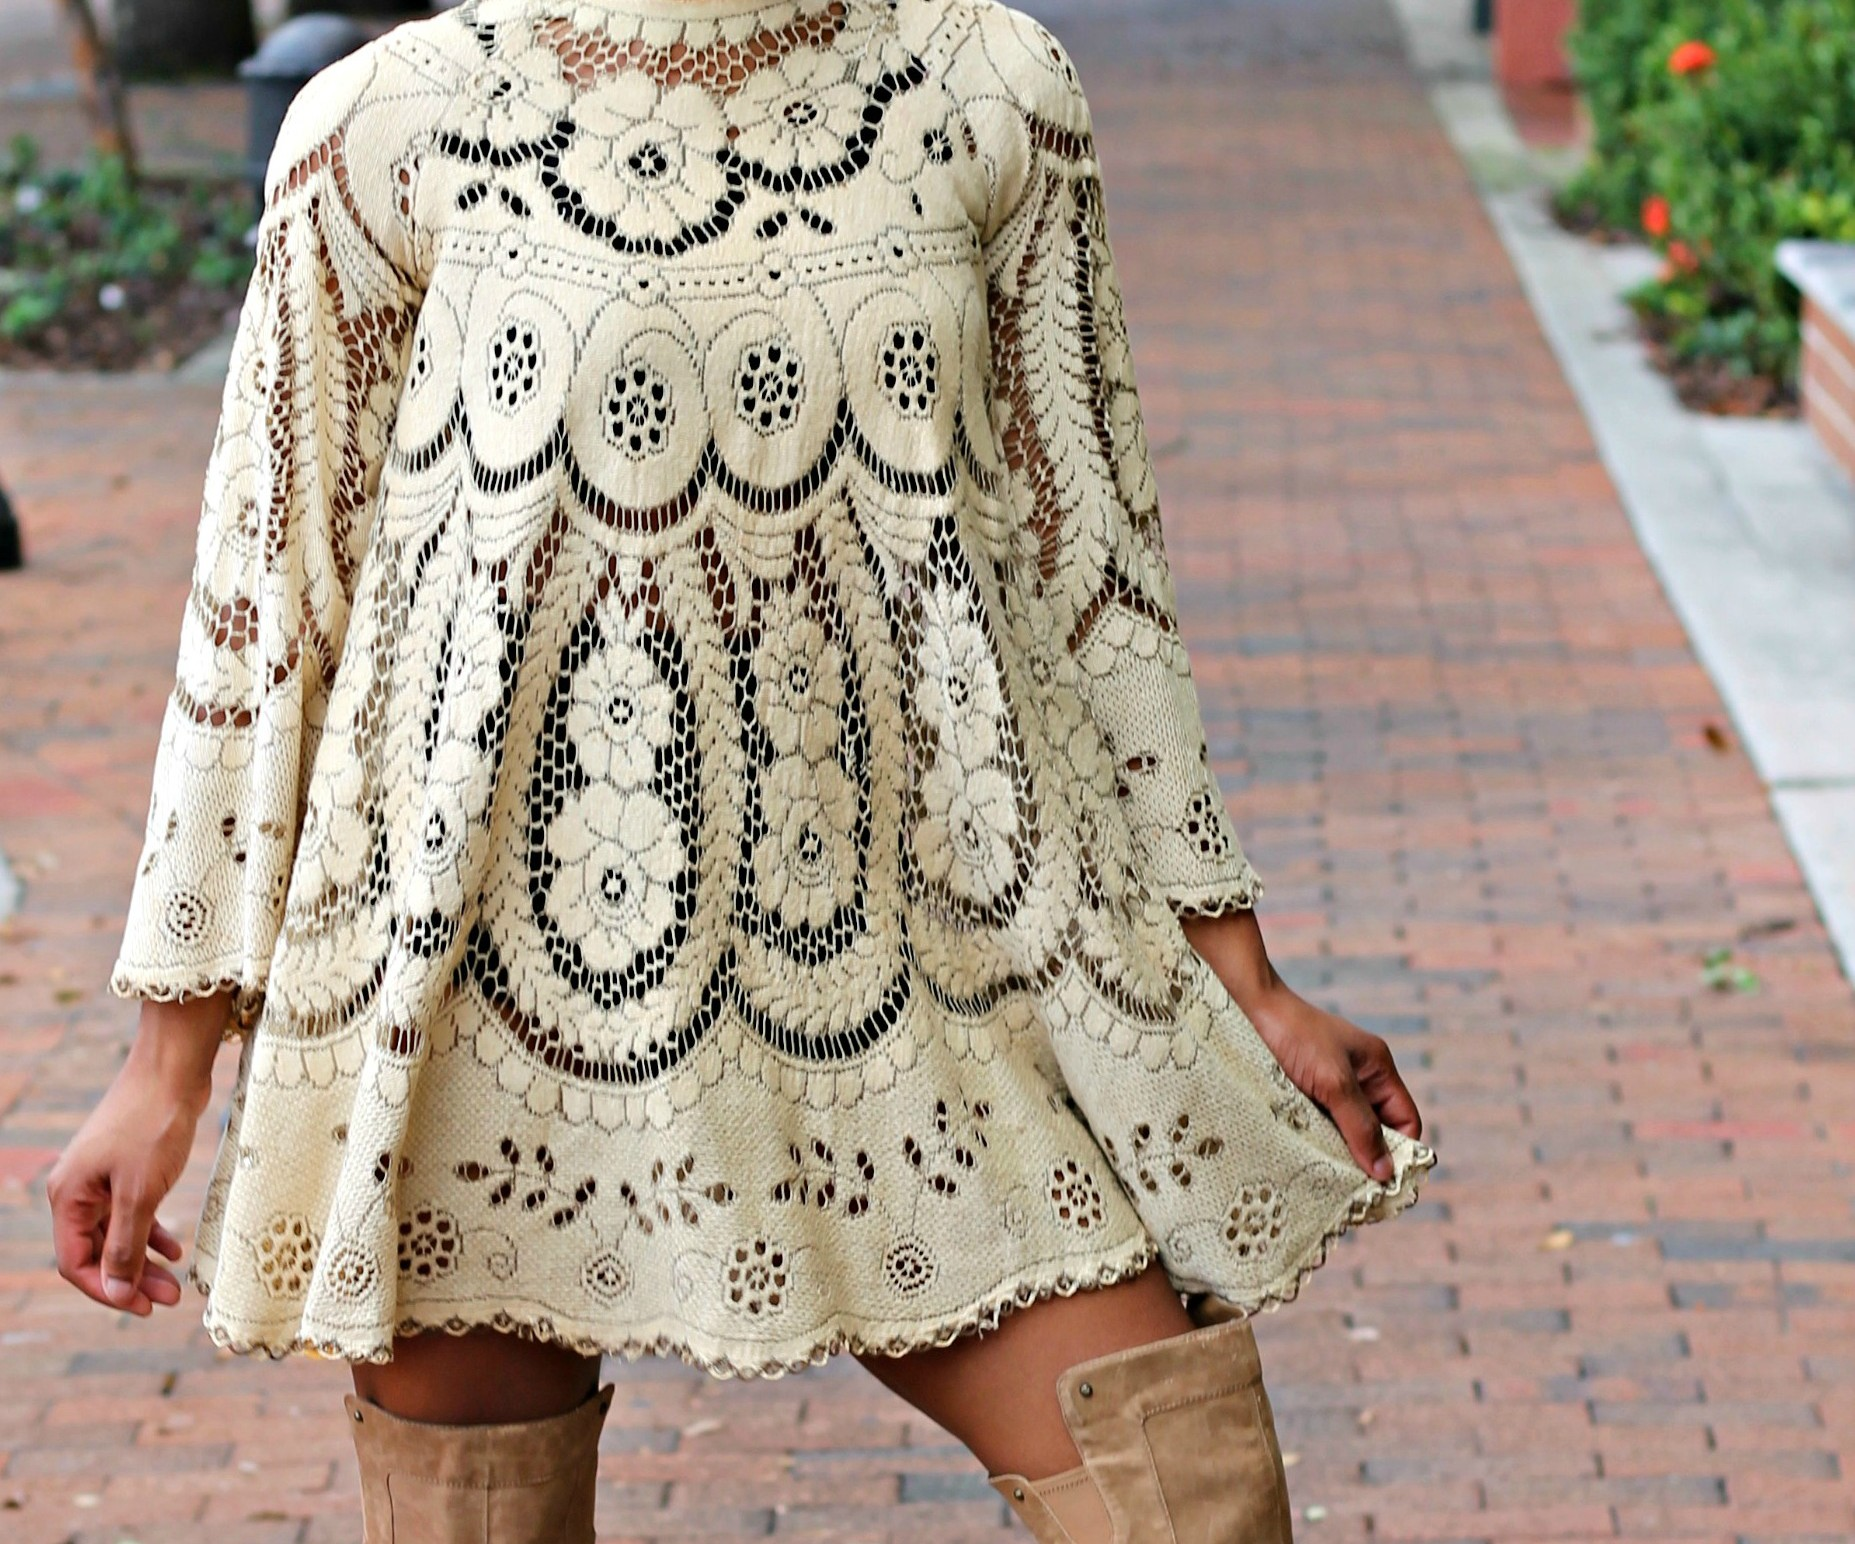 Vintage Crochet Dress - All About Crochet Ideas And Tool